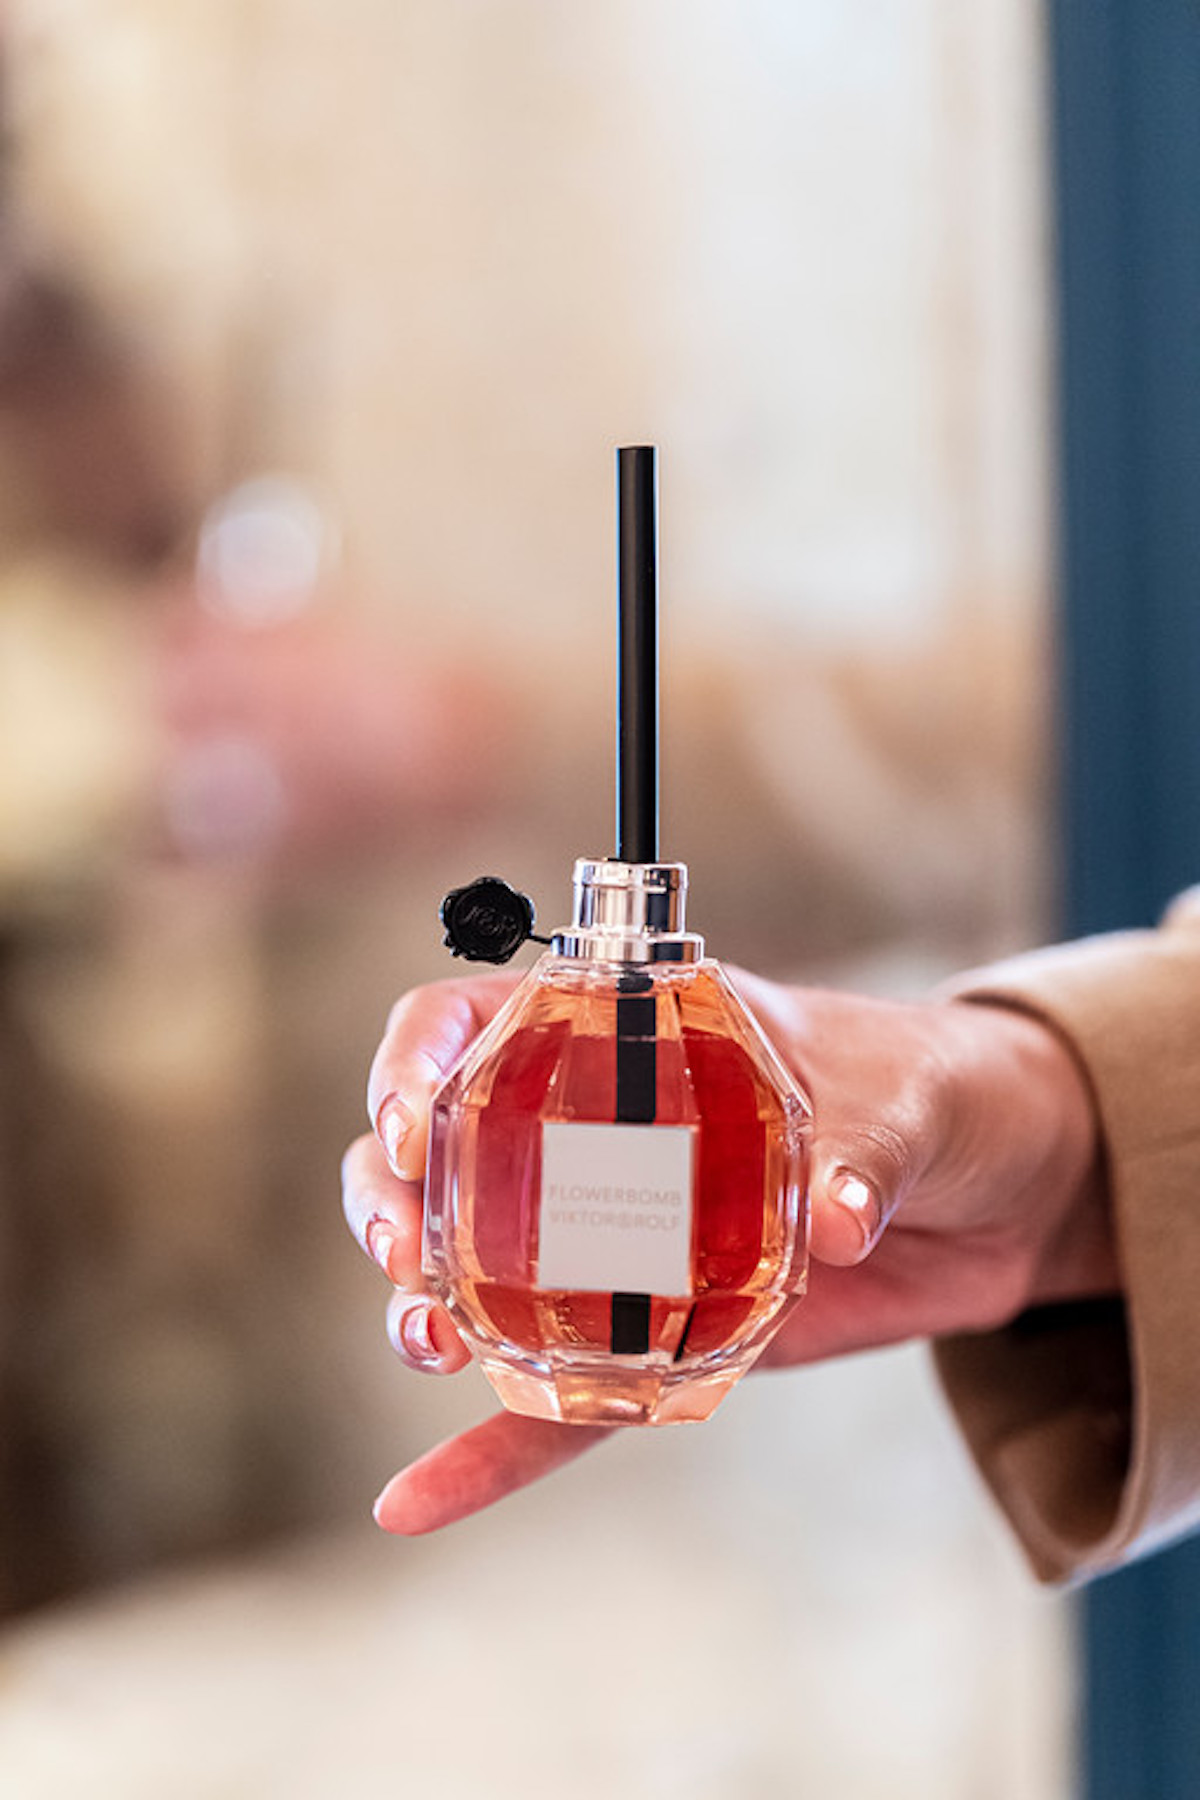 Viktor & Rolf flowerbomb afternoon tea